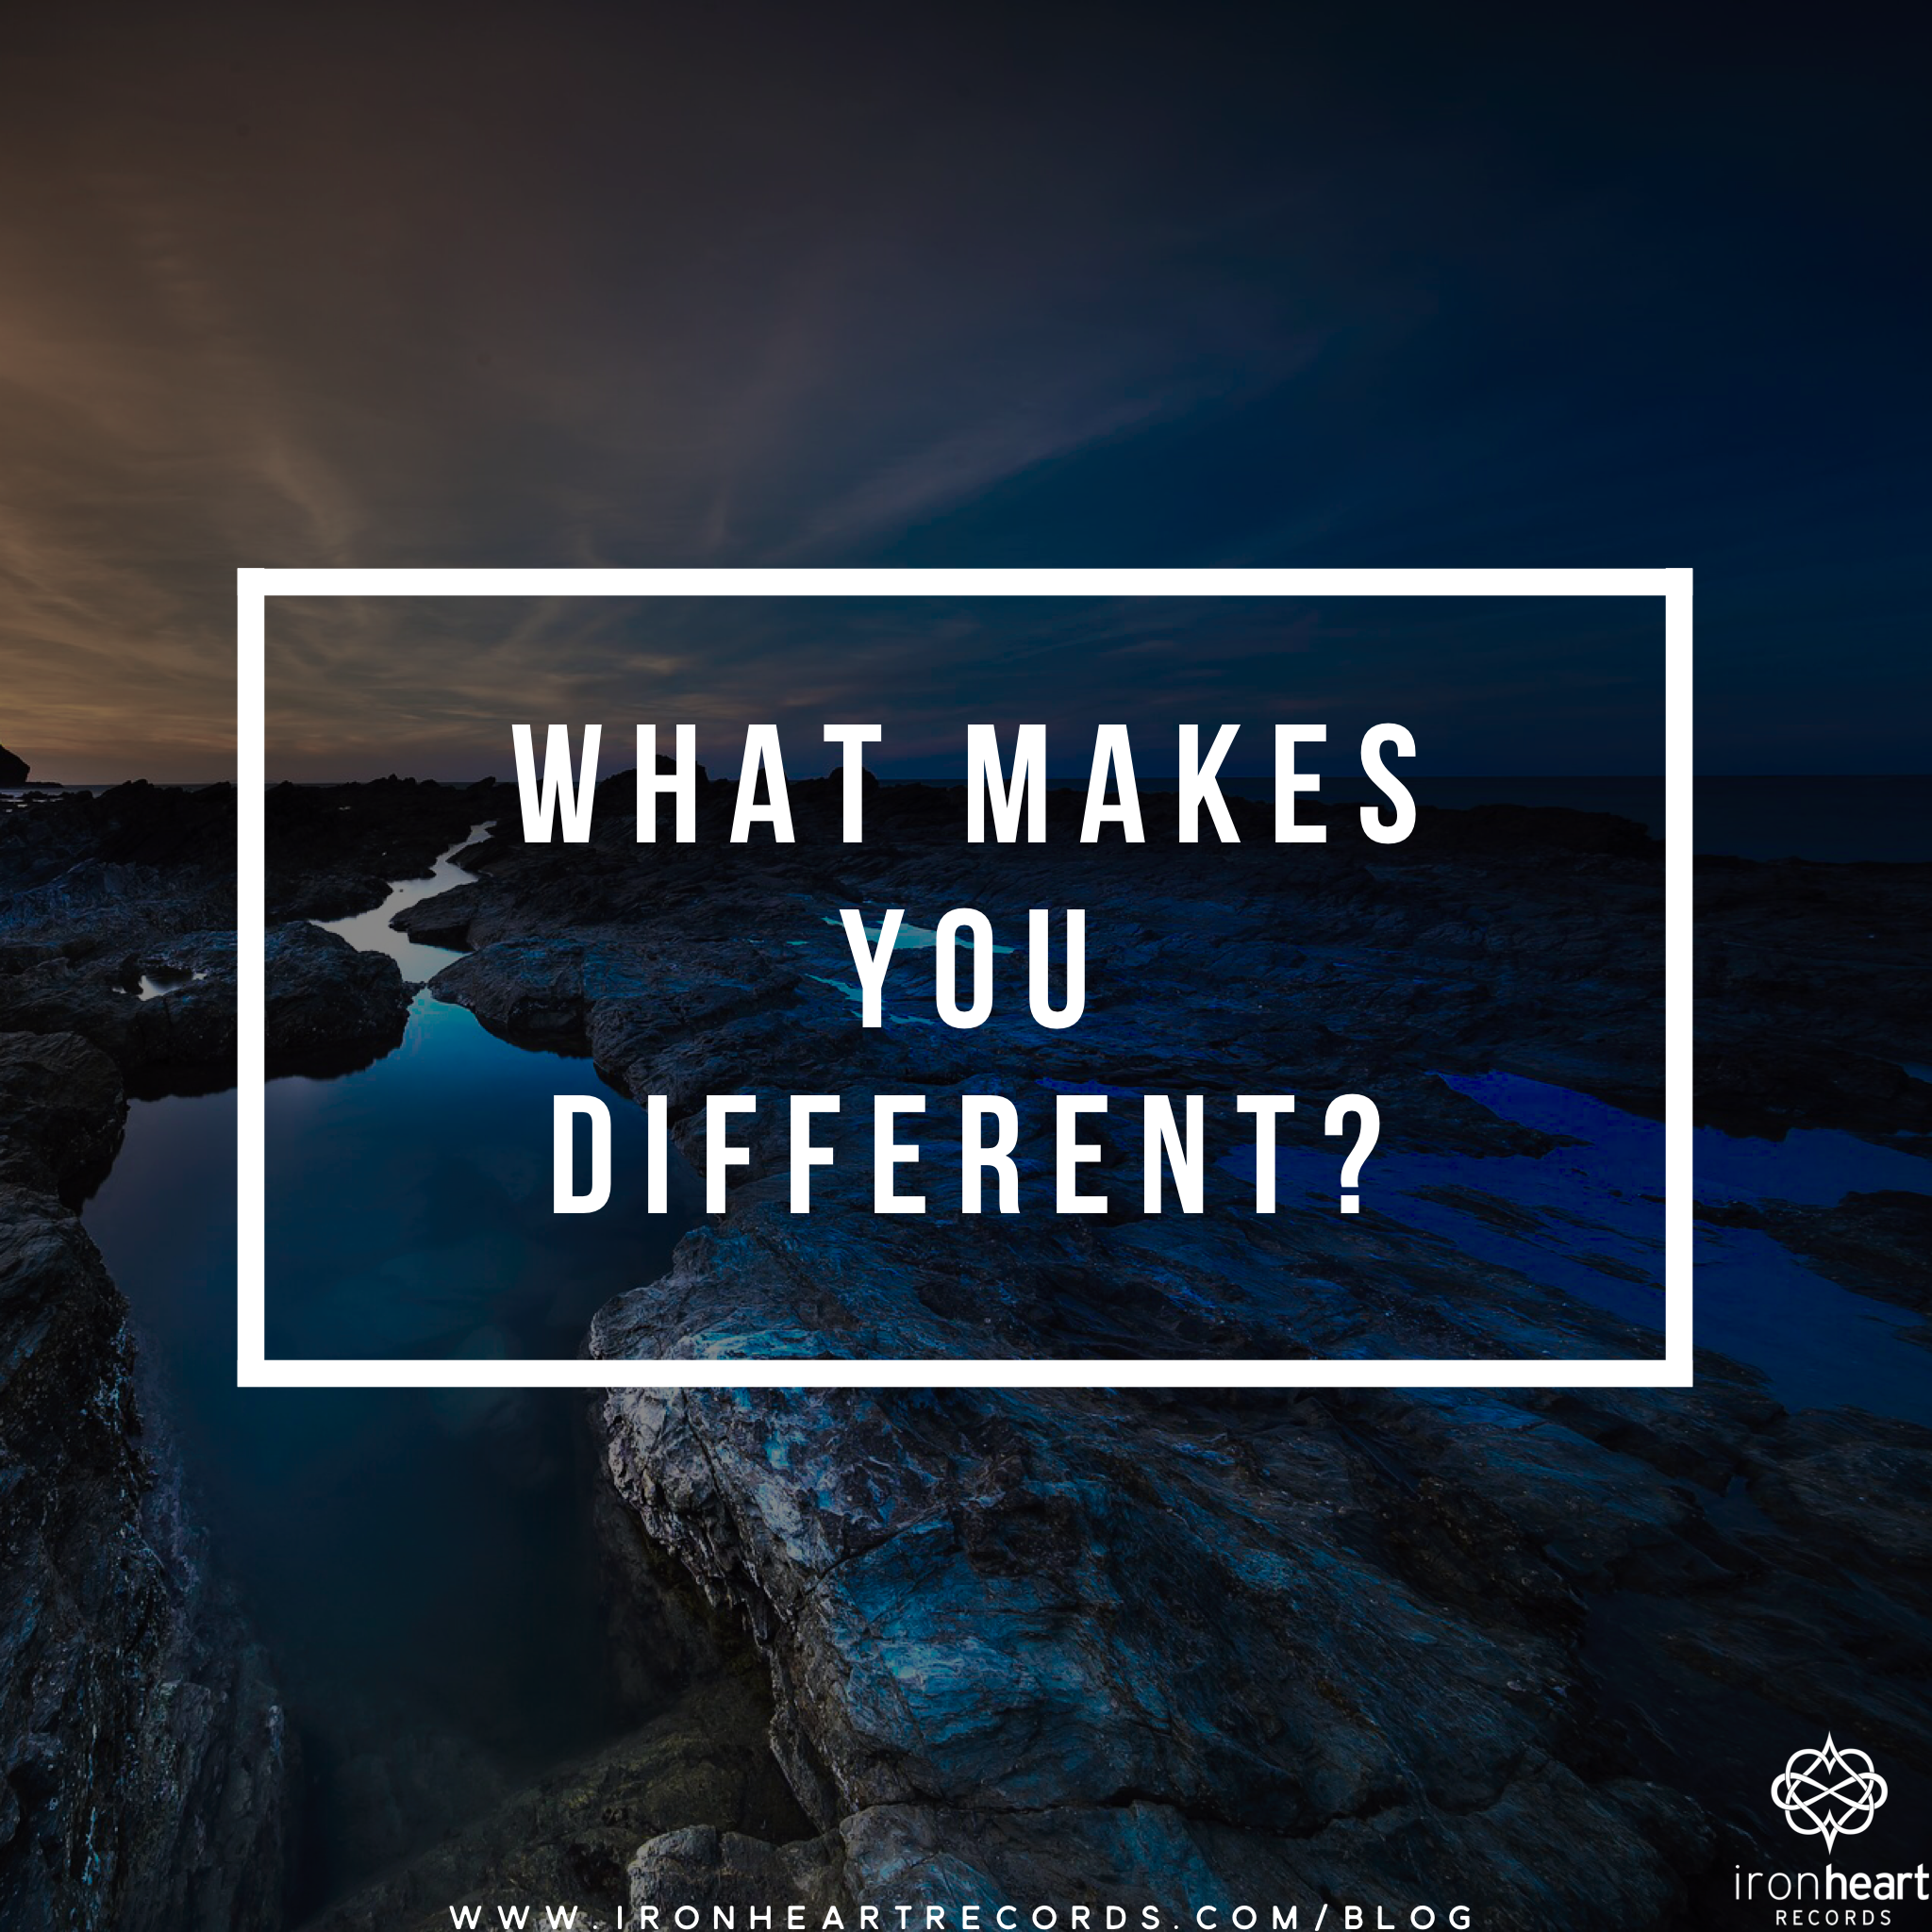 What makes you different?  Taking the time to answer this question is one of the most important exercises that you can do as an artist.  Here are ten questions to get your creative juices flowing:  1) Where do you come from?  2) What lights you up?   3) What is it about you that makes your story compelling?  4) What do you stand for?  5) What do you stand against?  6) What made you decide to become an artist?  7) What struggles have you had to overcome that define who you are?  8) What struggles are you currently going through?  9) Was there a point at which you were almost ready to give up?  10) What message would you like to impart upon the world?